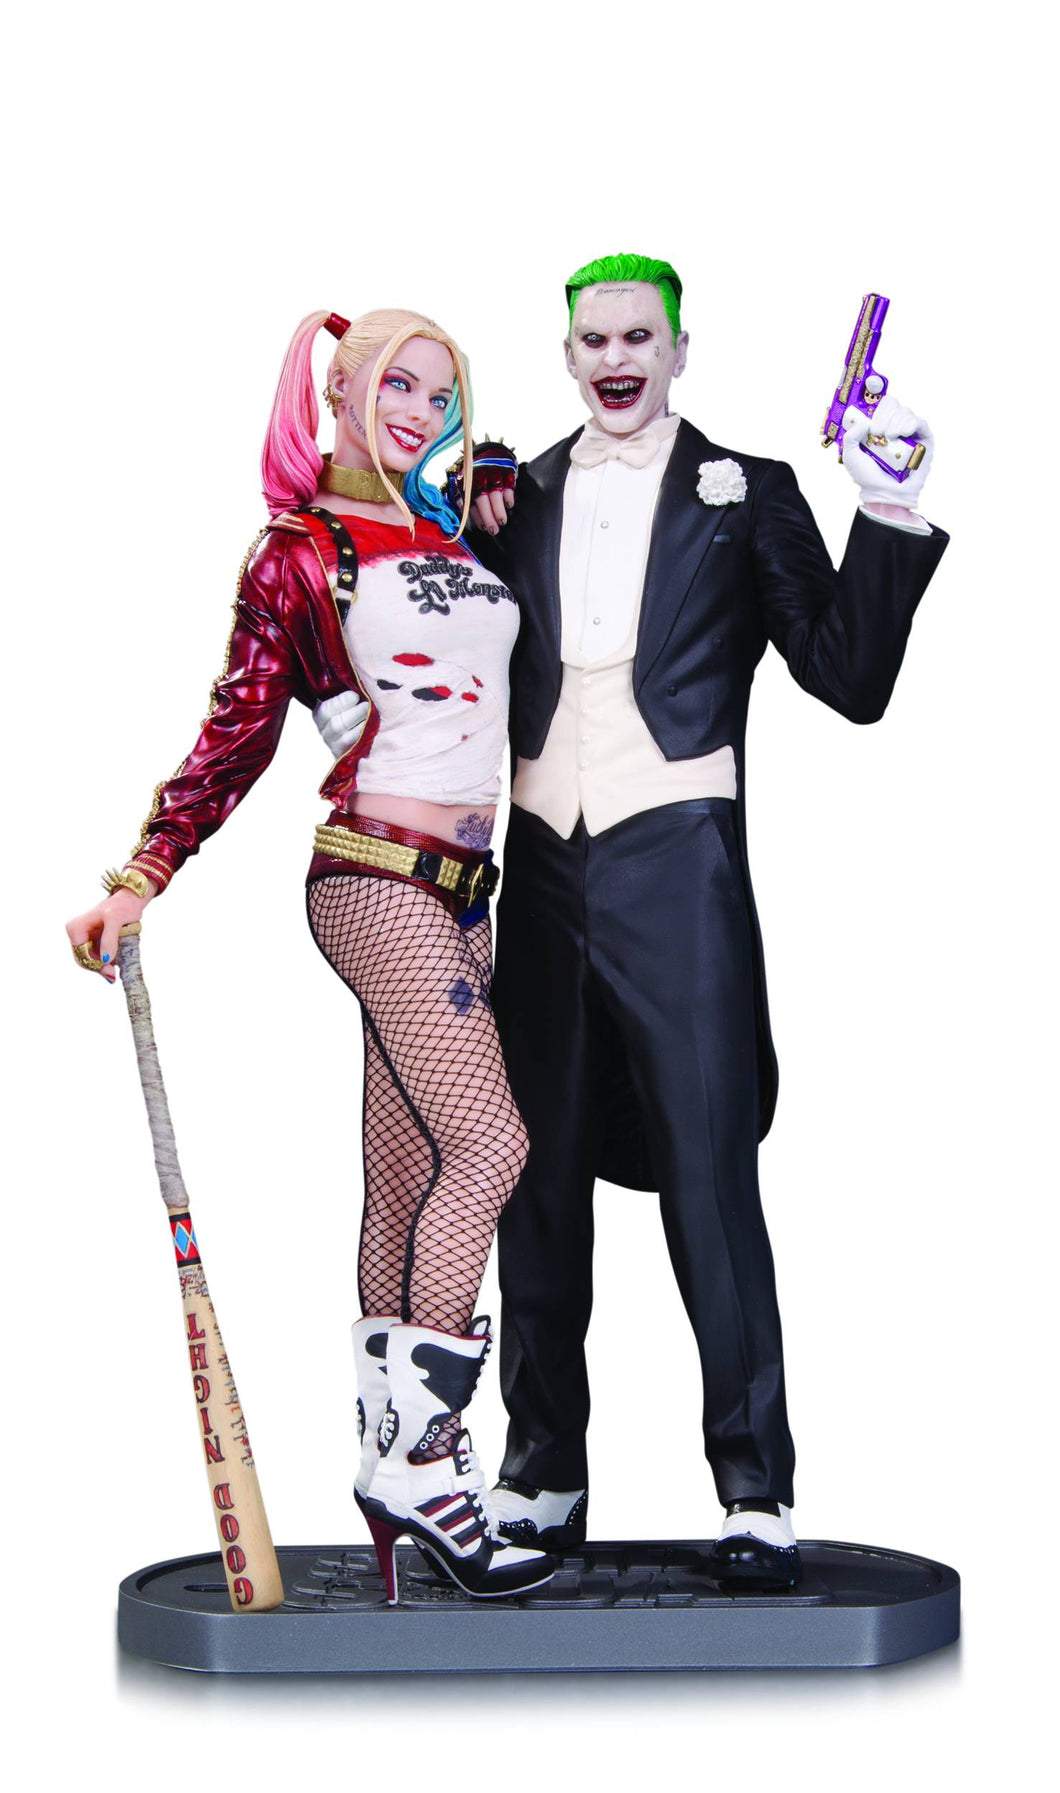 SUICIDE SQUAD MOVIE JOKER & HARLEY QUINN STATUE 13.25